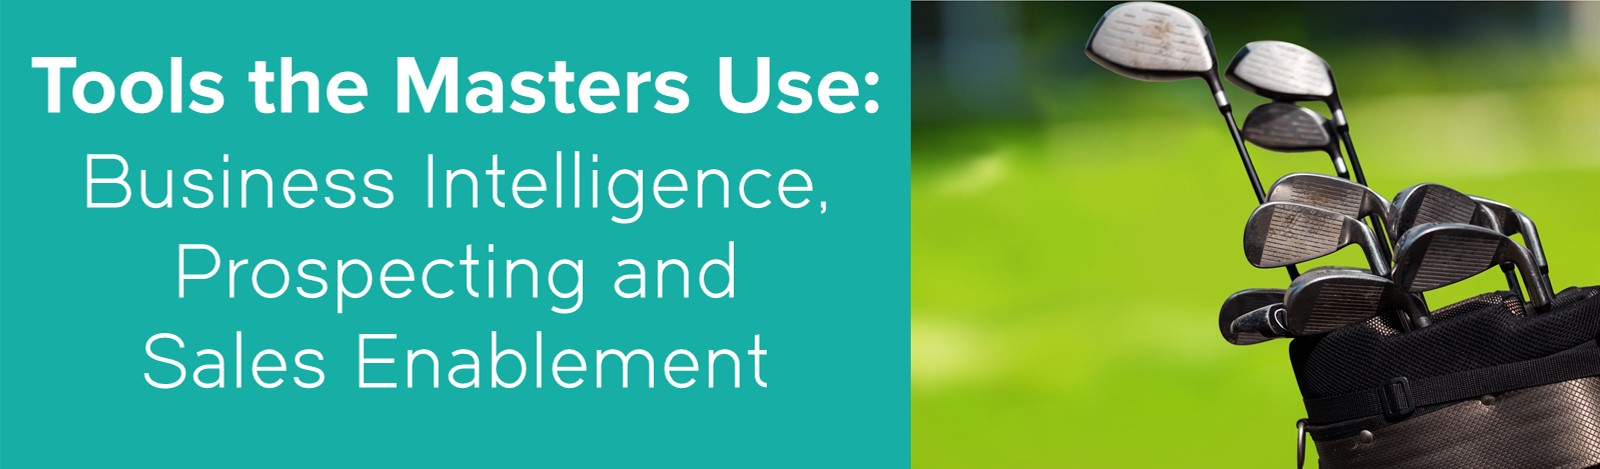 Tools the Masters Use for Business Intelligence, Prospecting and Sales Enablement